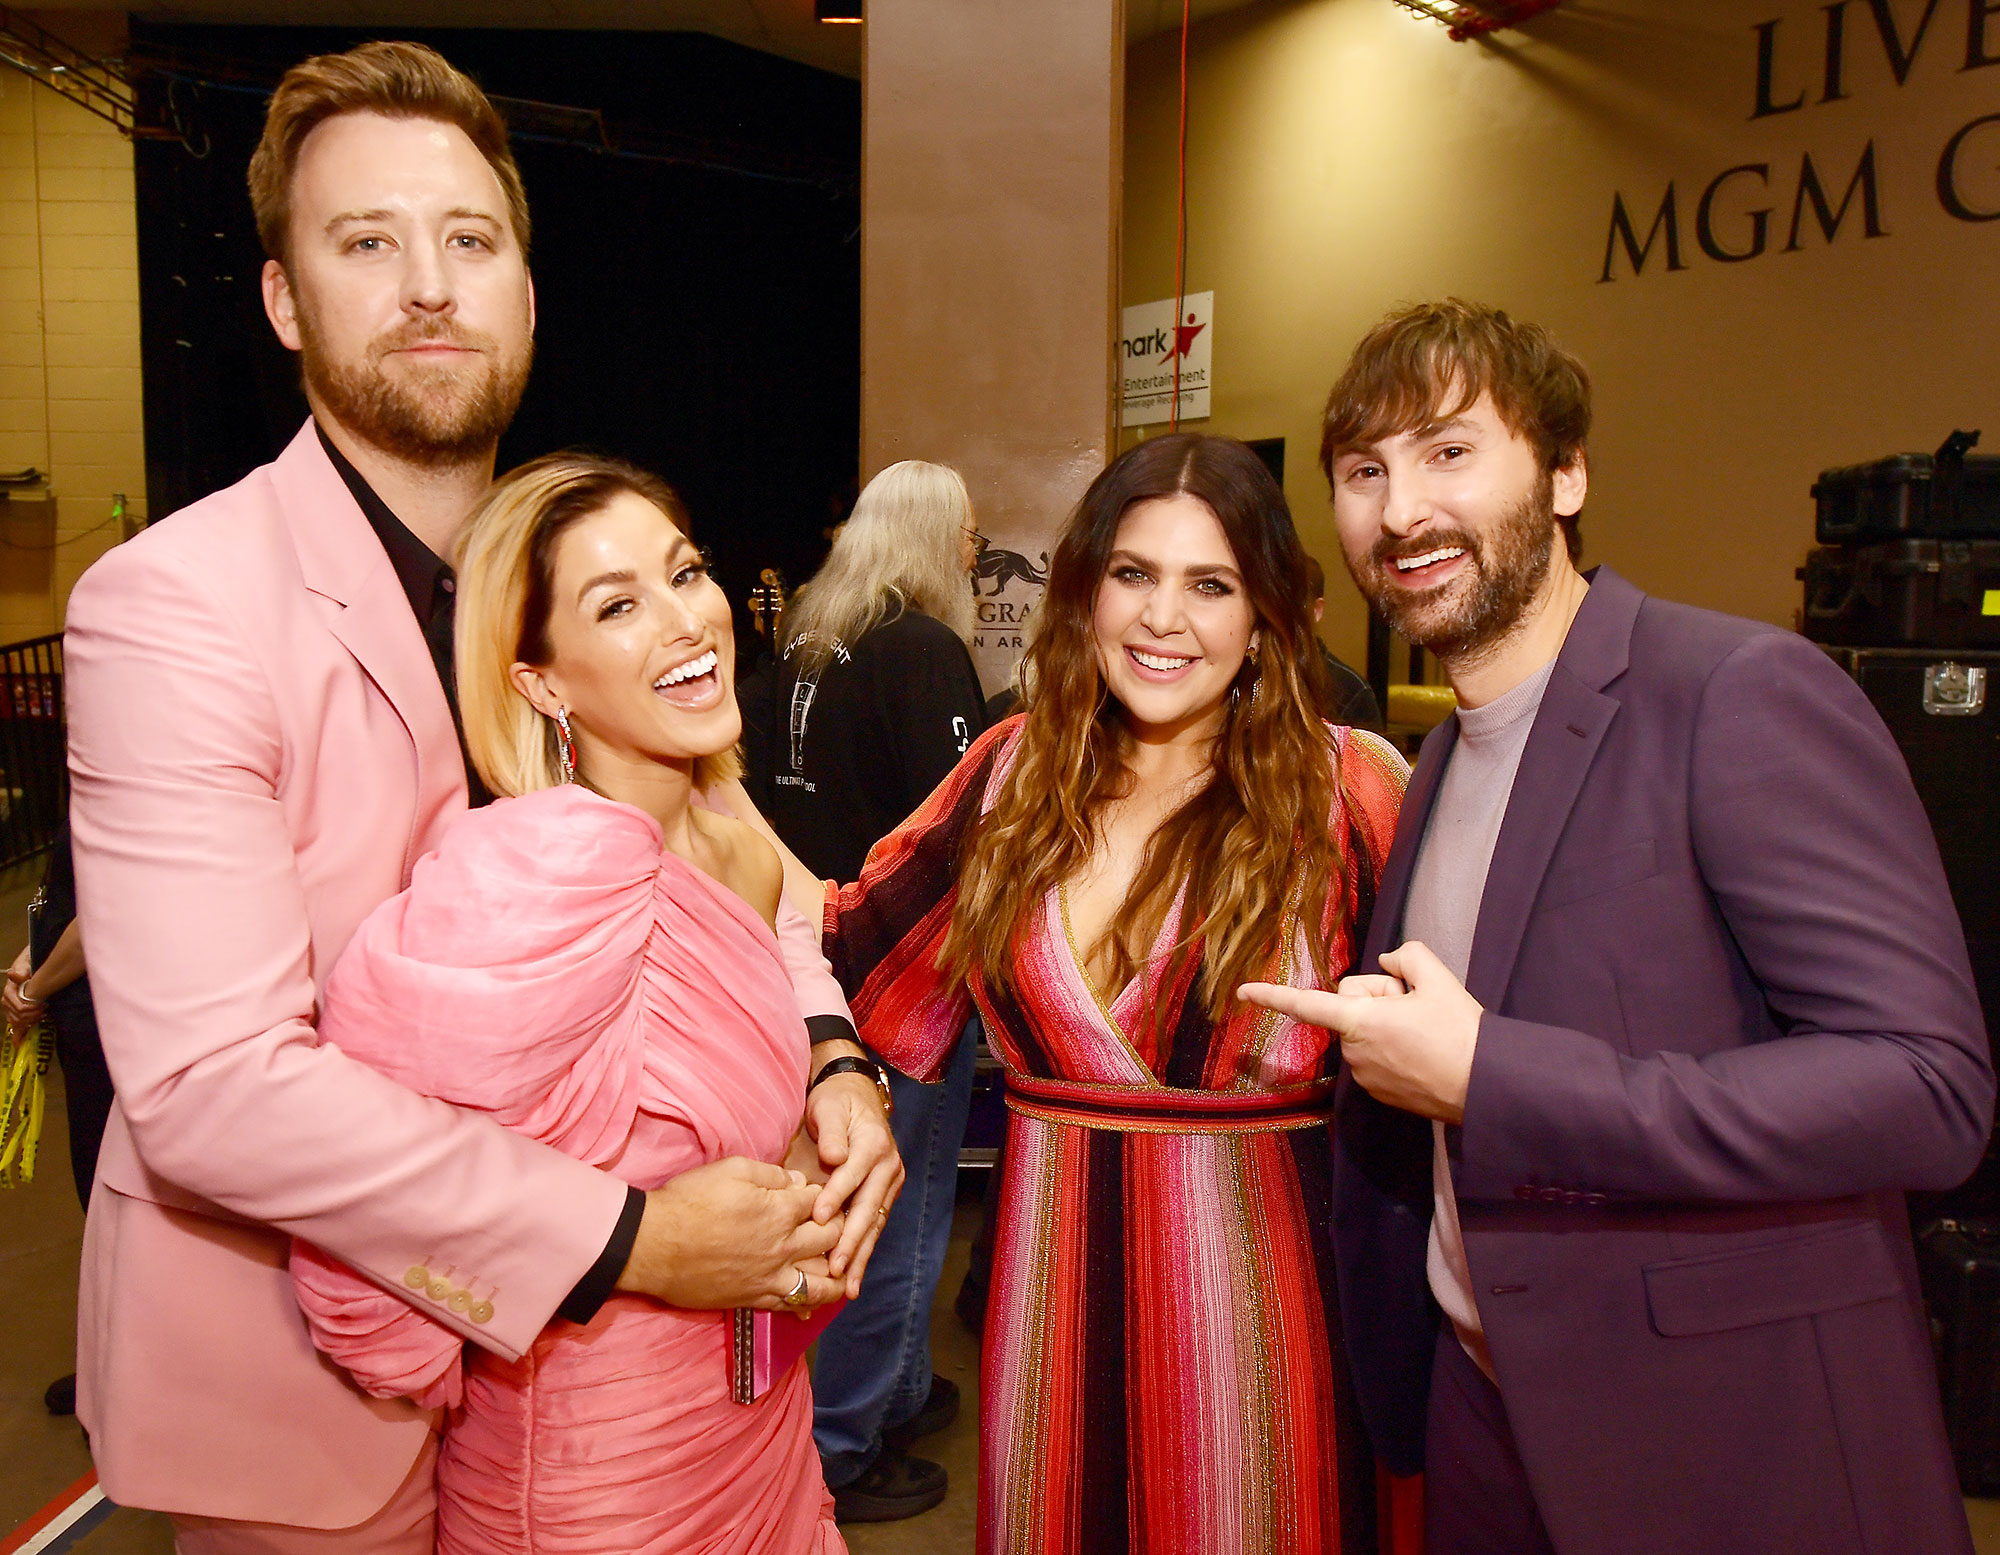 Inside ACM Awards 2019 Scott Kelley Cassie McConnell Hillary Scott Dave Haywood - Scott Kelly , Cassie McConnell , Hillary Scot t and Dave Haywood shared a funny moment backstage.